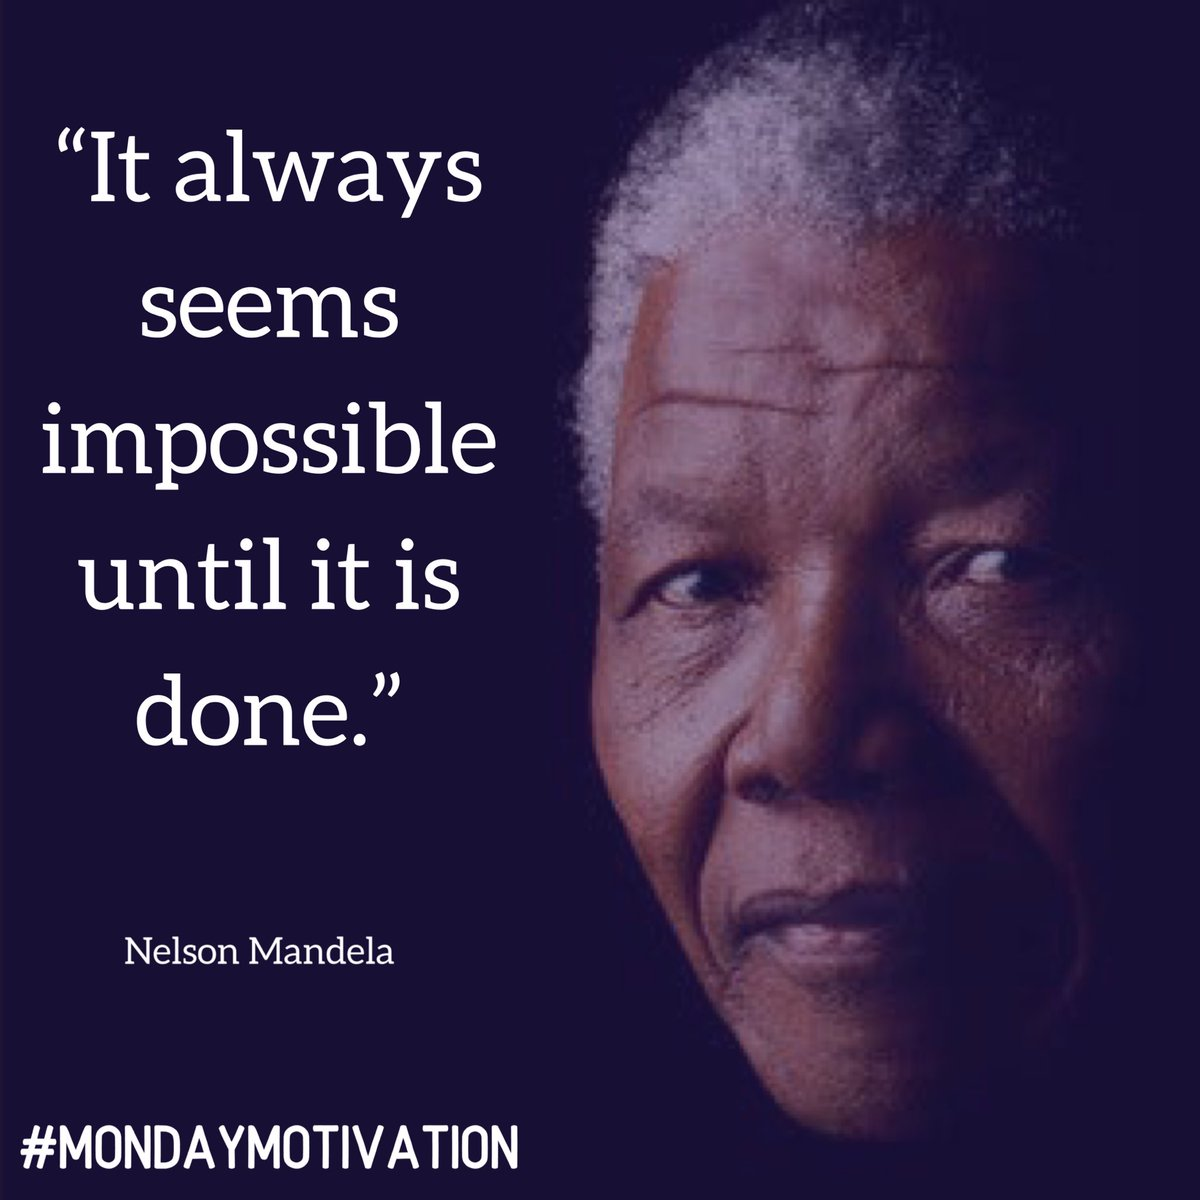 """It always seems impossible until it is done."" - Nelson Mandela #MondayMotivaton <br>http://pic.twitter.com/6sAqSYofRc"